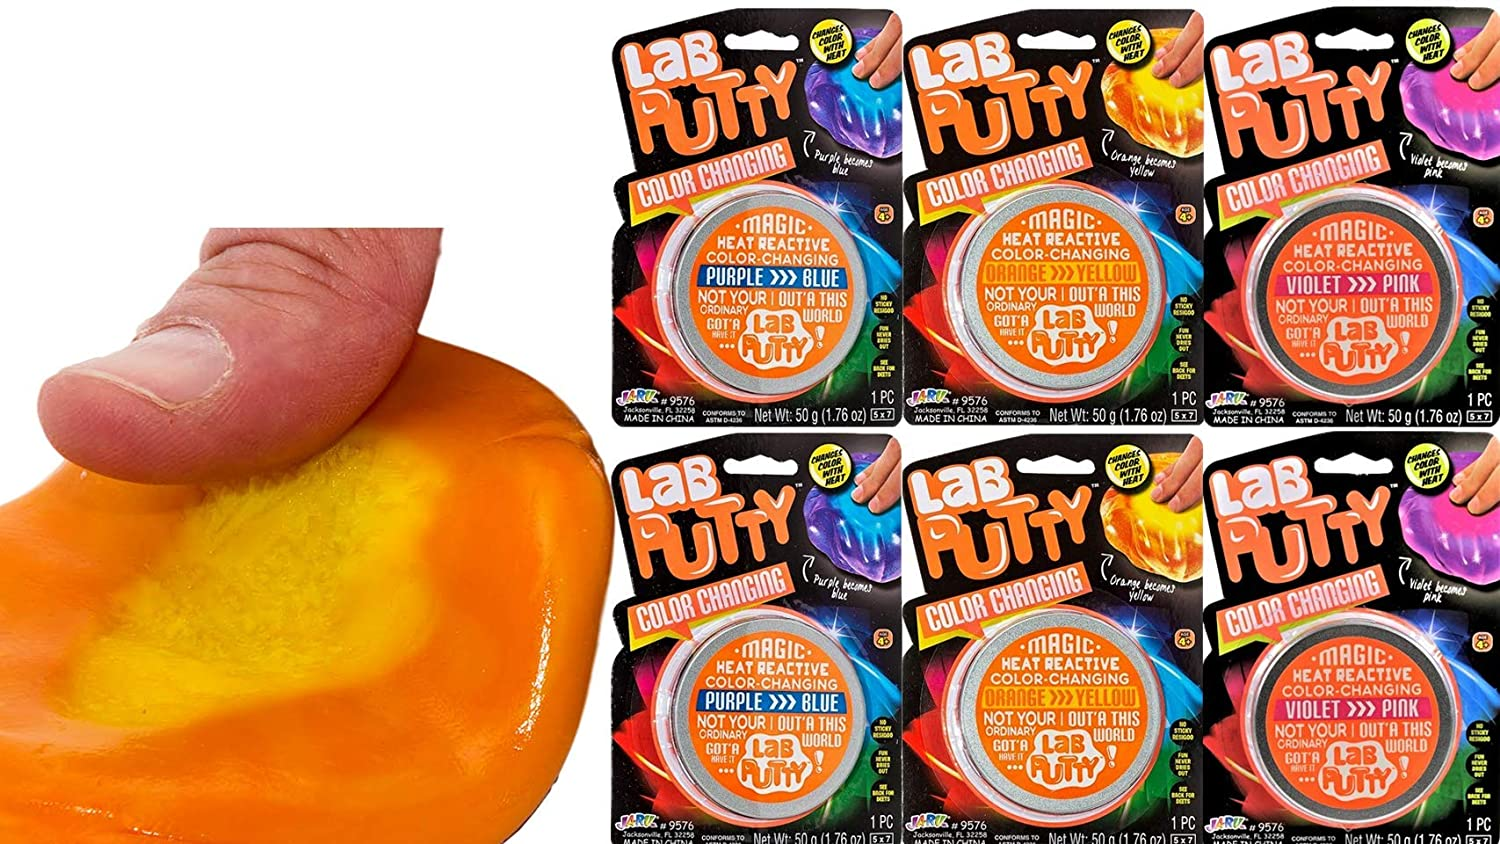 JA-RU Lab Putty Color Changing Heat Sensitive Bouncing (6 Units Assorted) Putty for Kids Best Thinking Silly Smart Crazy Stress Relief Putty with Tin, Sensory Toys Party Favor for Kids 9576-6p